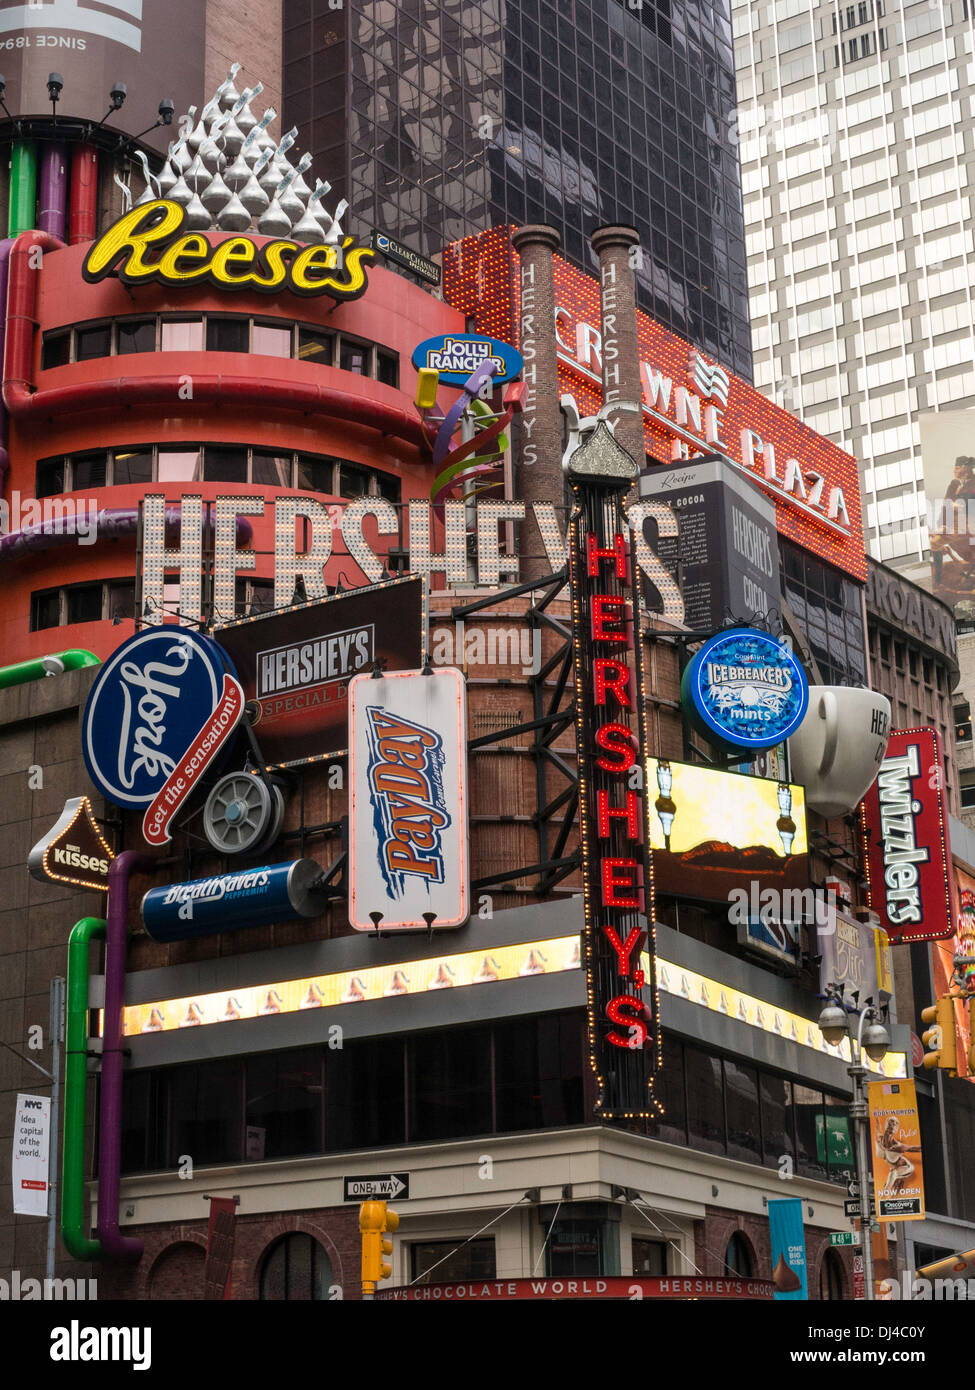 Hershey's Chocolate World Times Square, NYC Stock Photo, Royalty ...